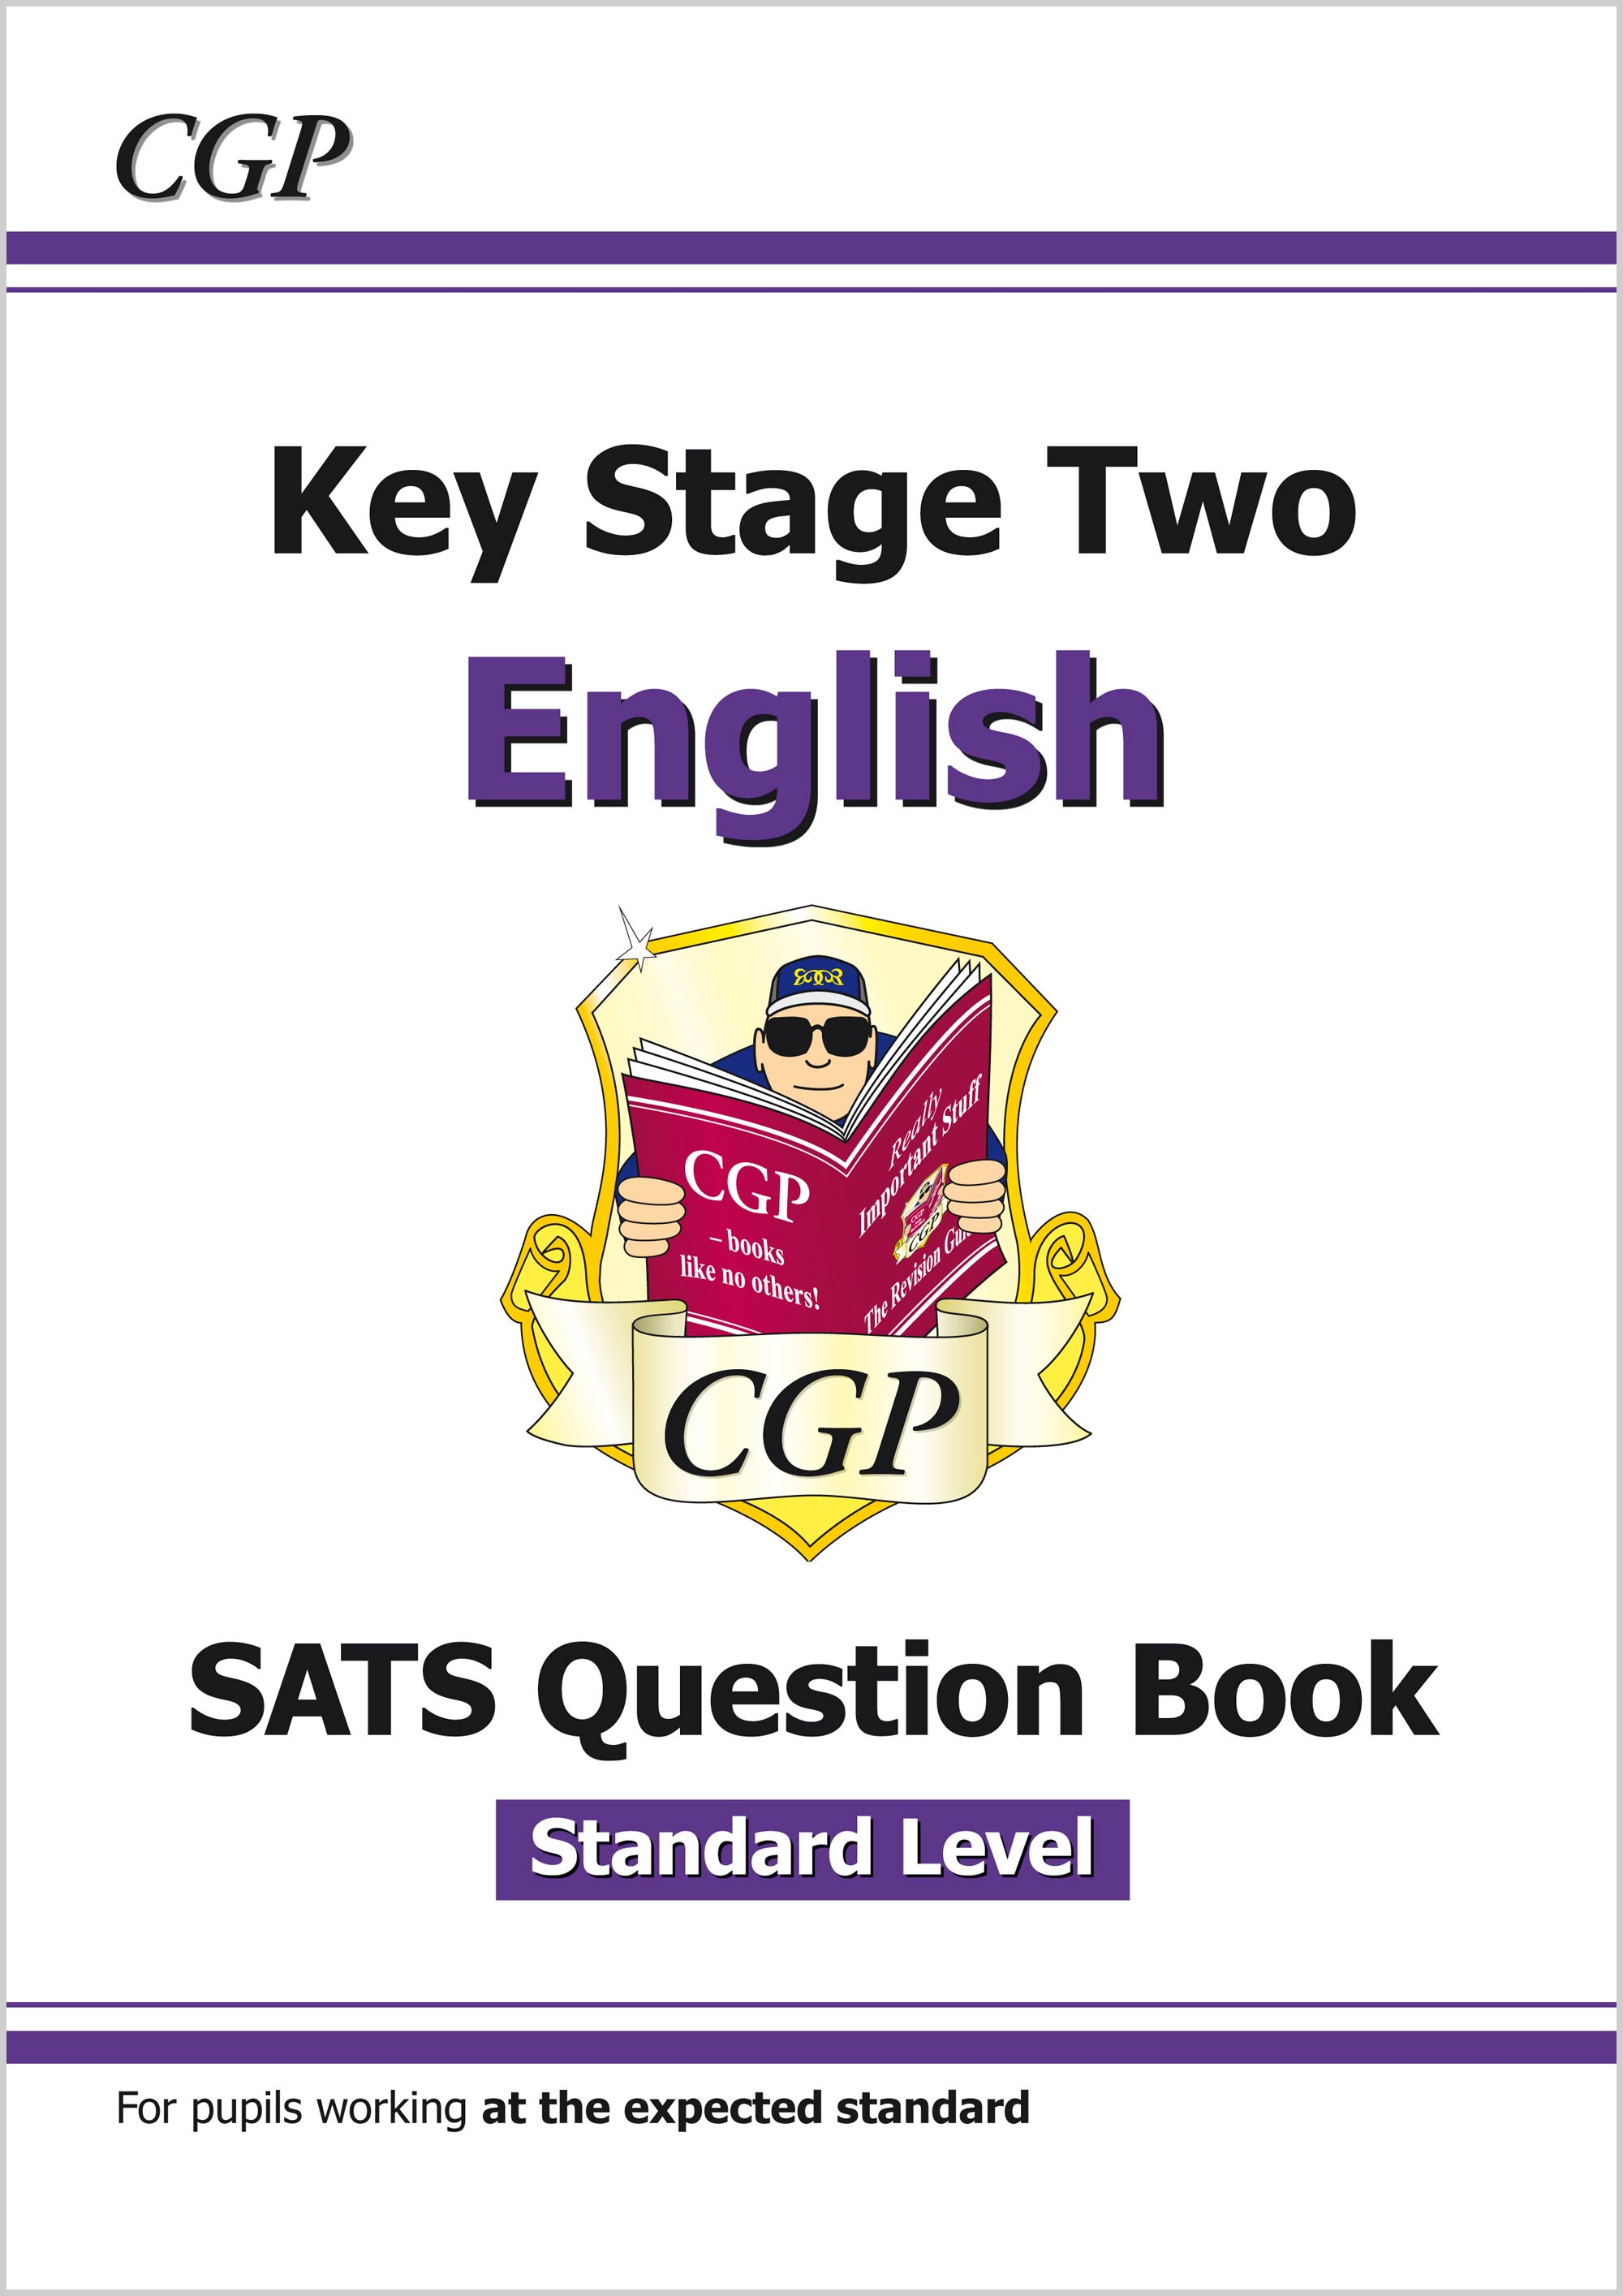 E6FW22 - KS2 English Targeted SATS Question Book - Standard Level (for the 2019 tests)